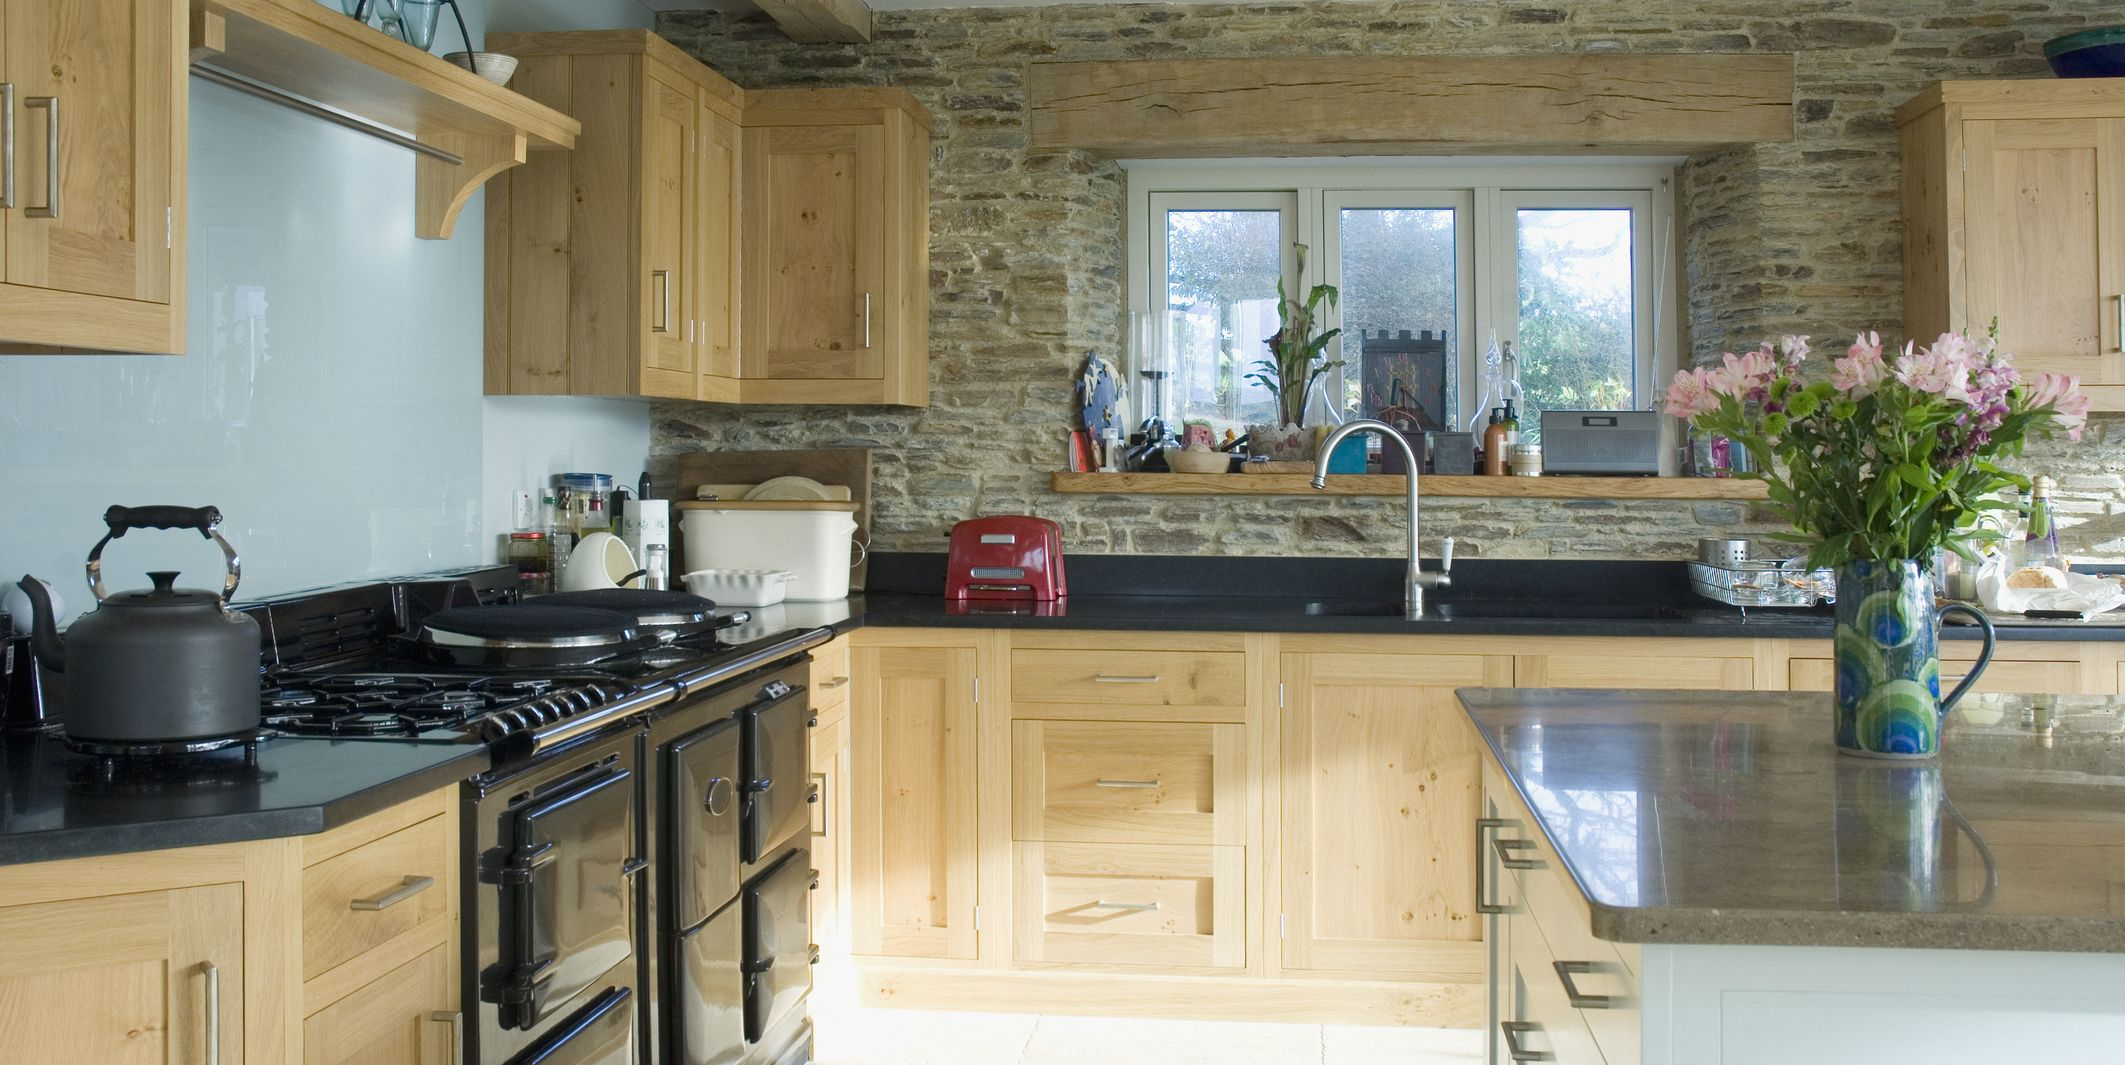 72% of kitchen experts say this storage option will add the most value to your home